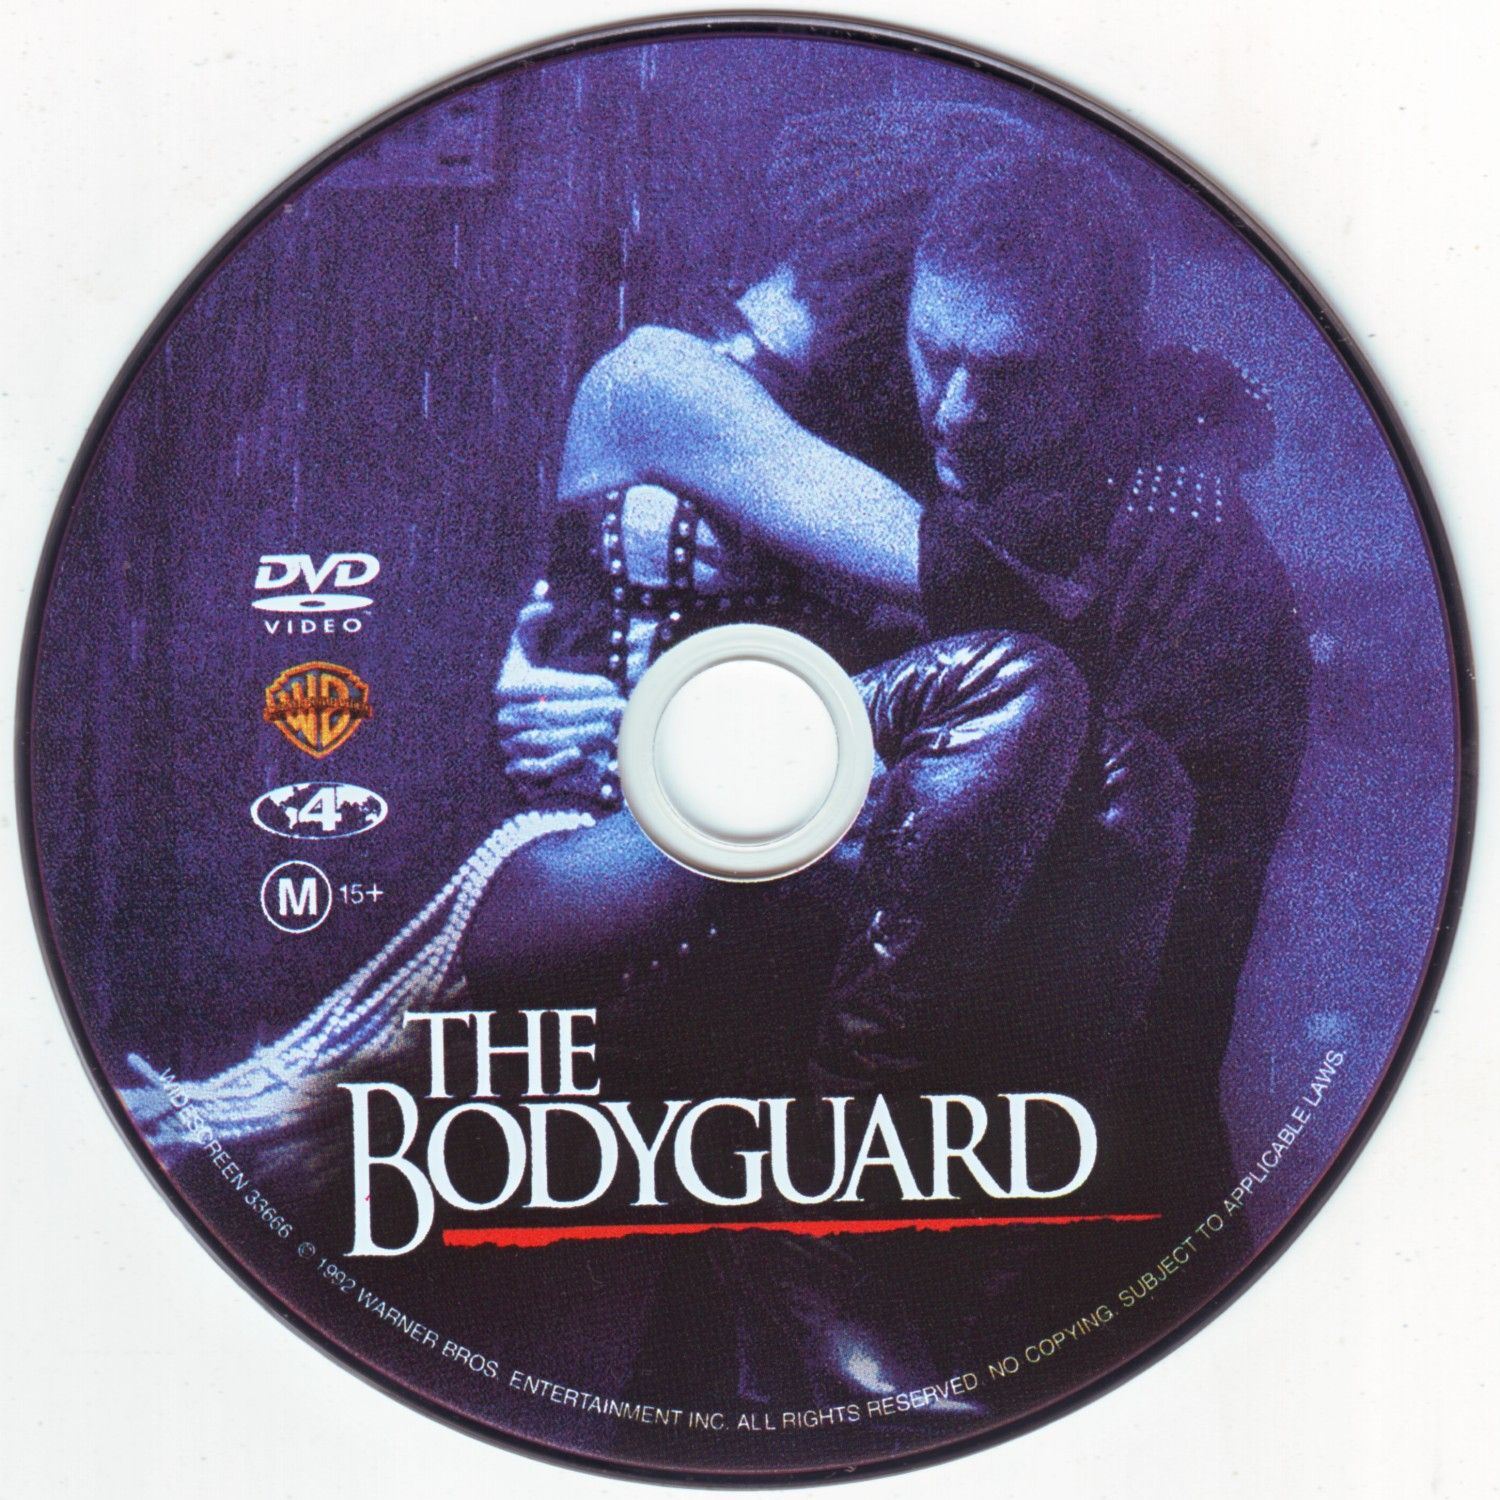 Cd Movies  The Bodyguard  R  Movie Dvd  Cd Cover Dvd